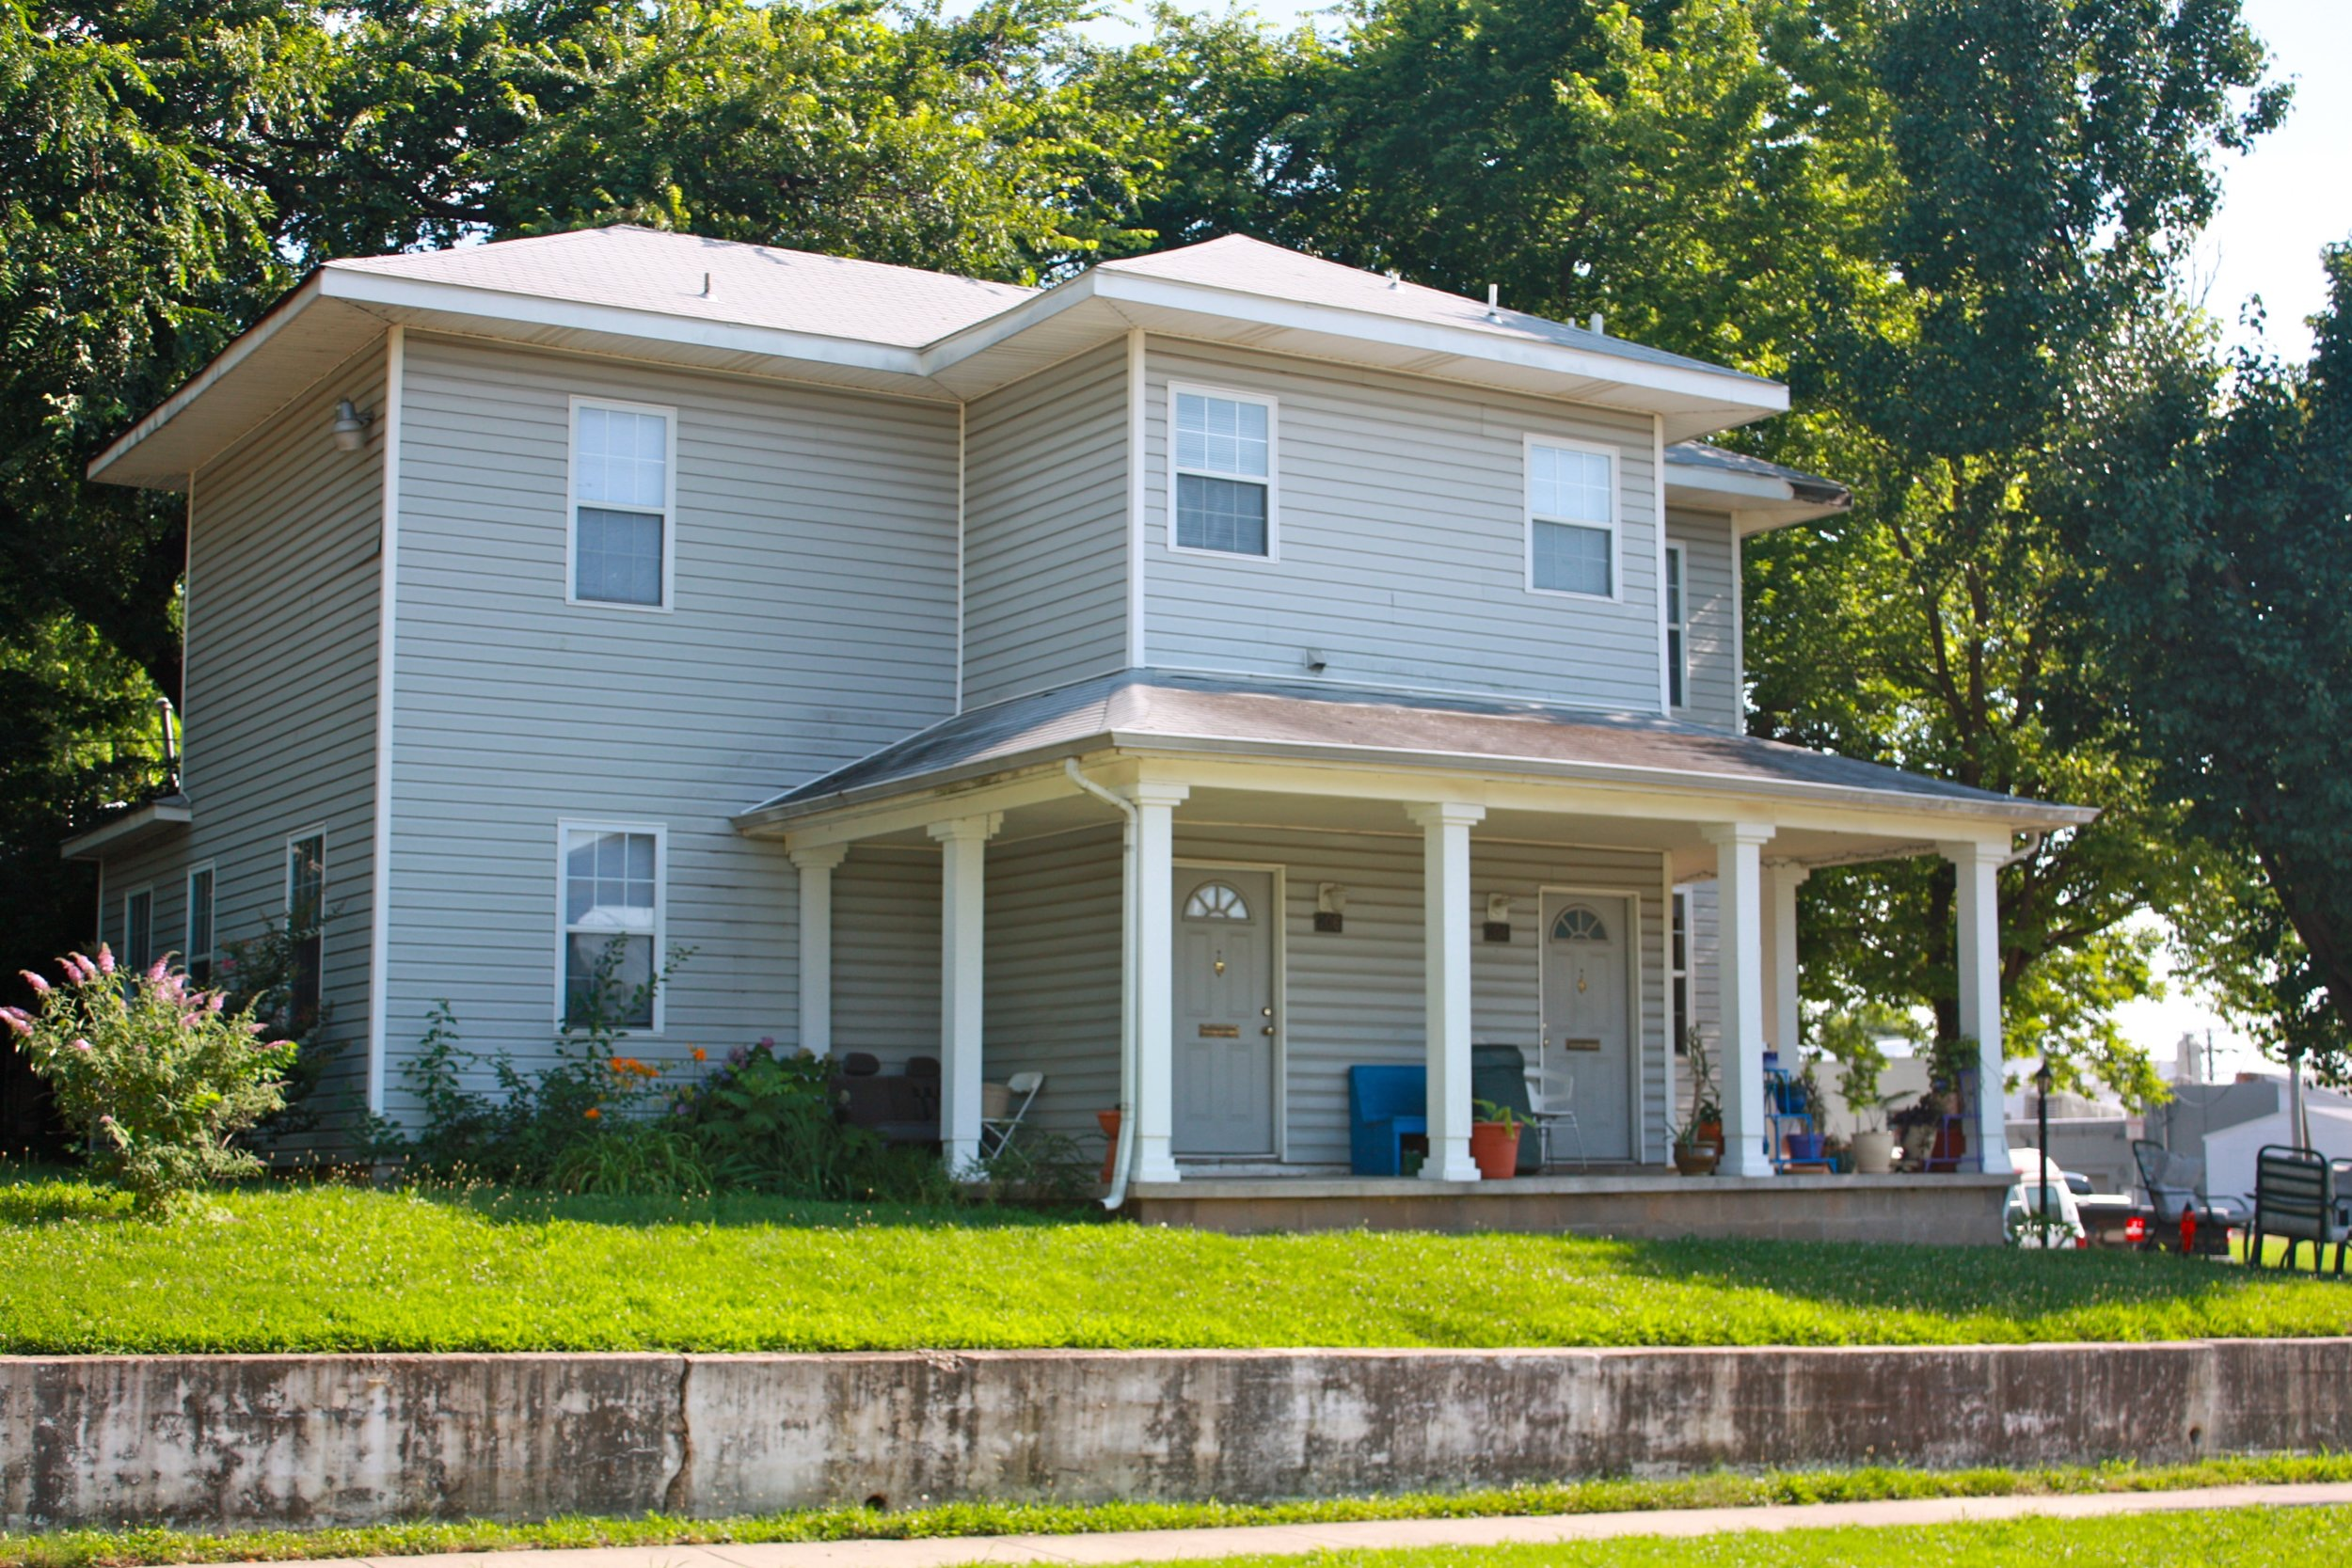 204 E 17th PL Duplex - $850 PER MONTH + UTILITIES | 2 BED | 1 BATHDuplex - Downstairs Unit, Living Room, Dining Room, Decorative fireplace, Carpet, Across from Maple Park, Close to Expressways, Near Downtown, Water Paid.DETAILS: $850 per month + gas & electric, $500 security deposit, Minimum 1-year lease, $150 non-refundable pet deposit per pet, No Section 8.